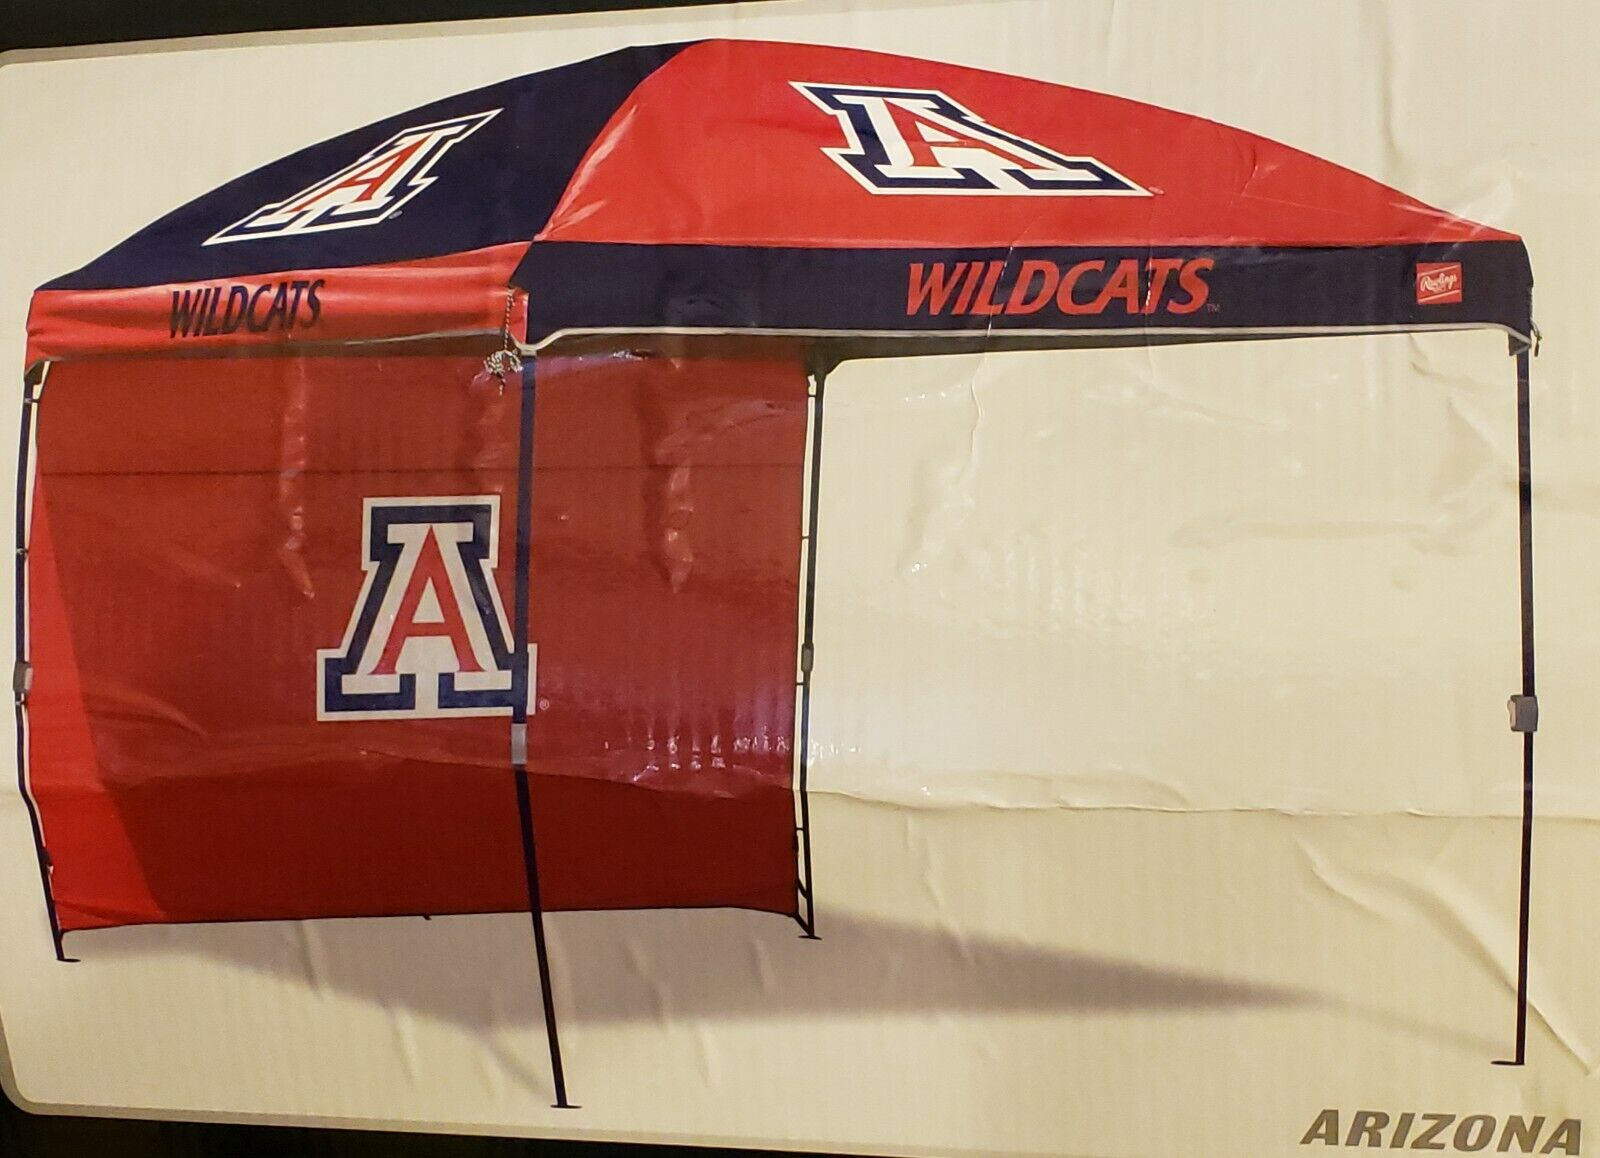 Arizona Wildcats NCAA 10' x 10' Dome Canopy with Wall by Rawlings